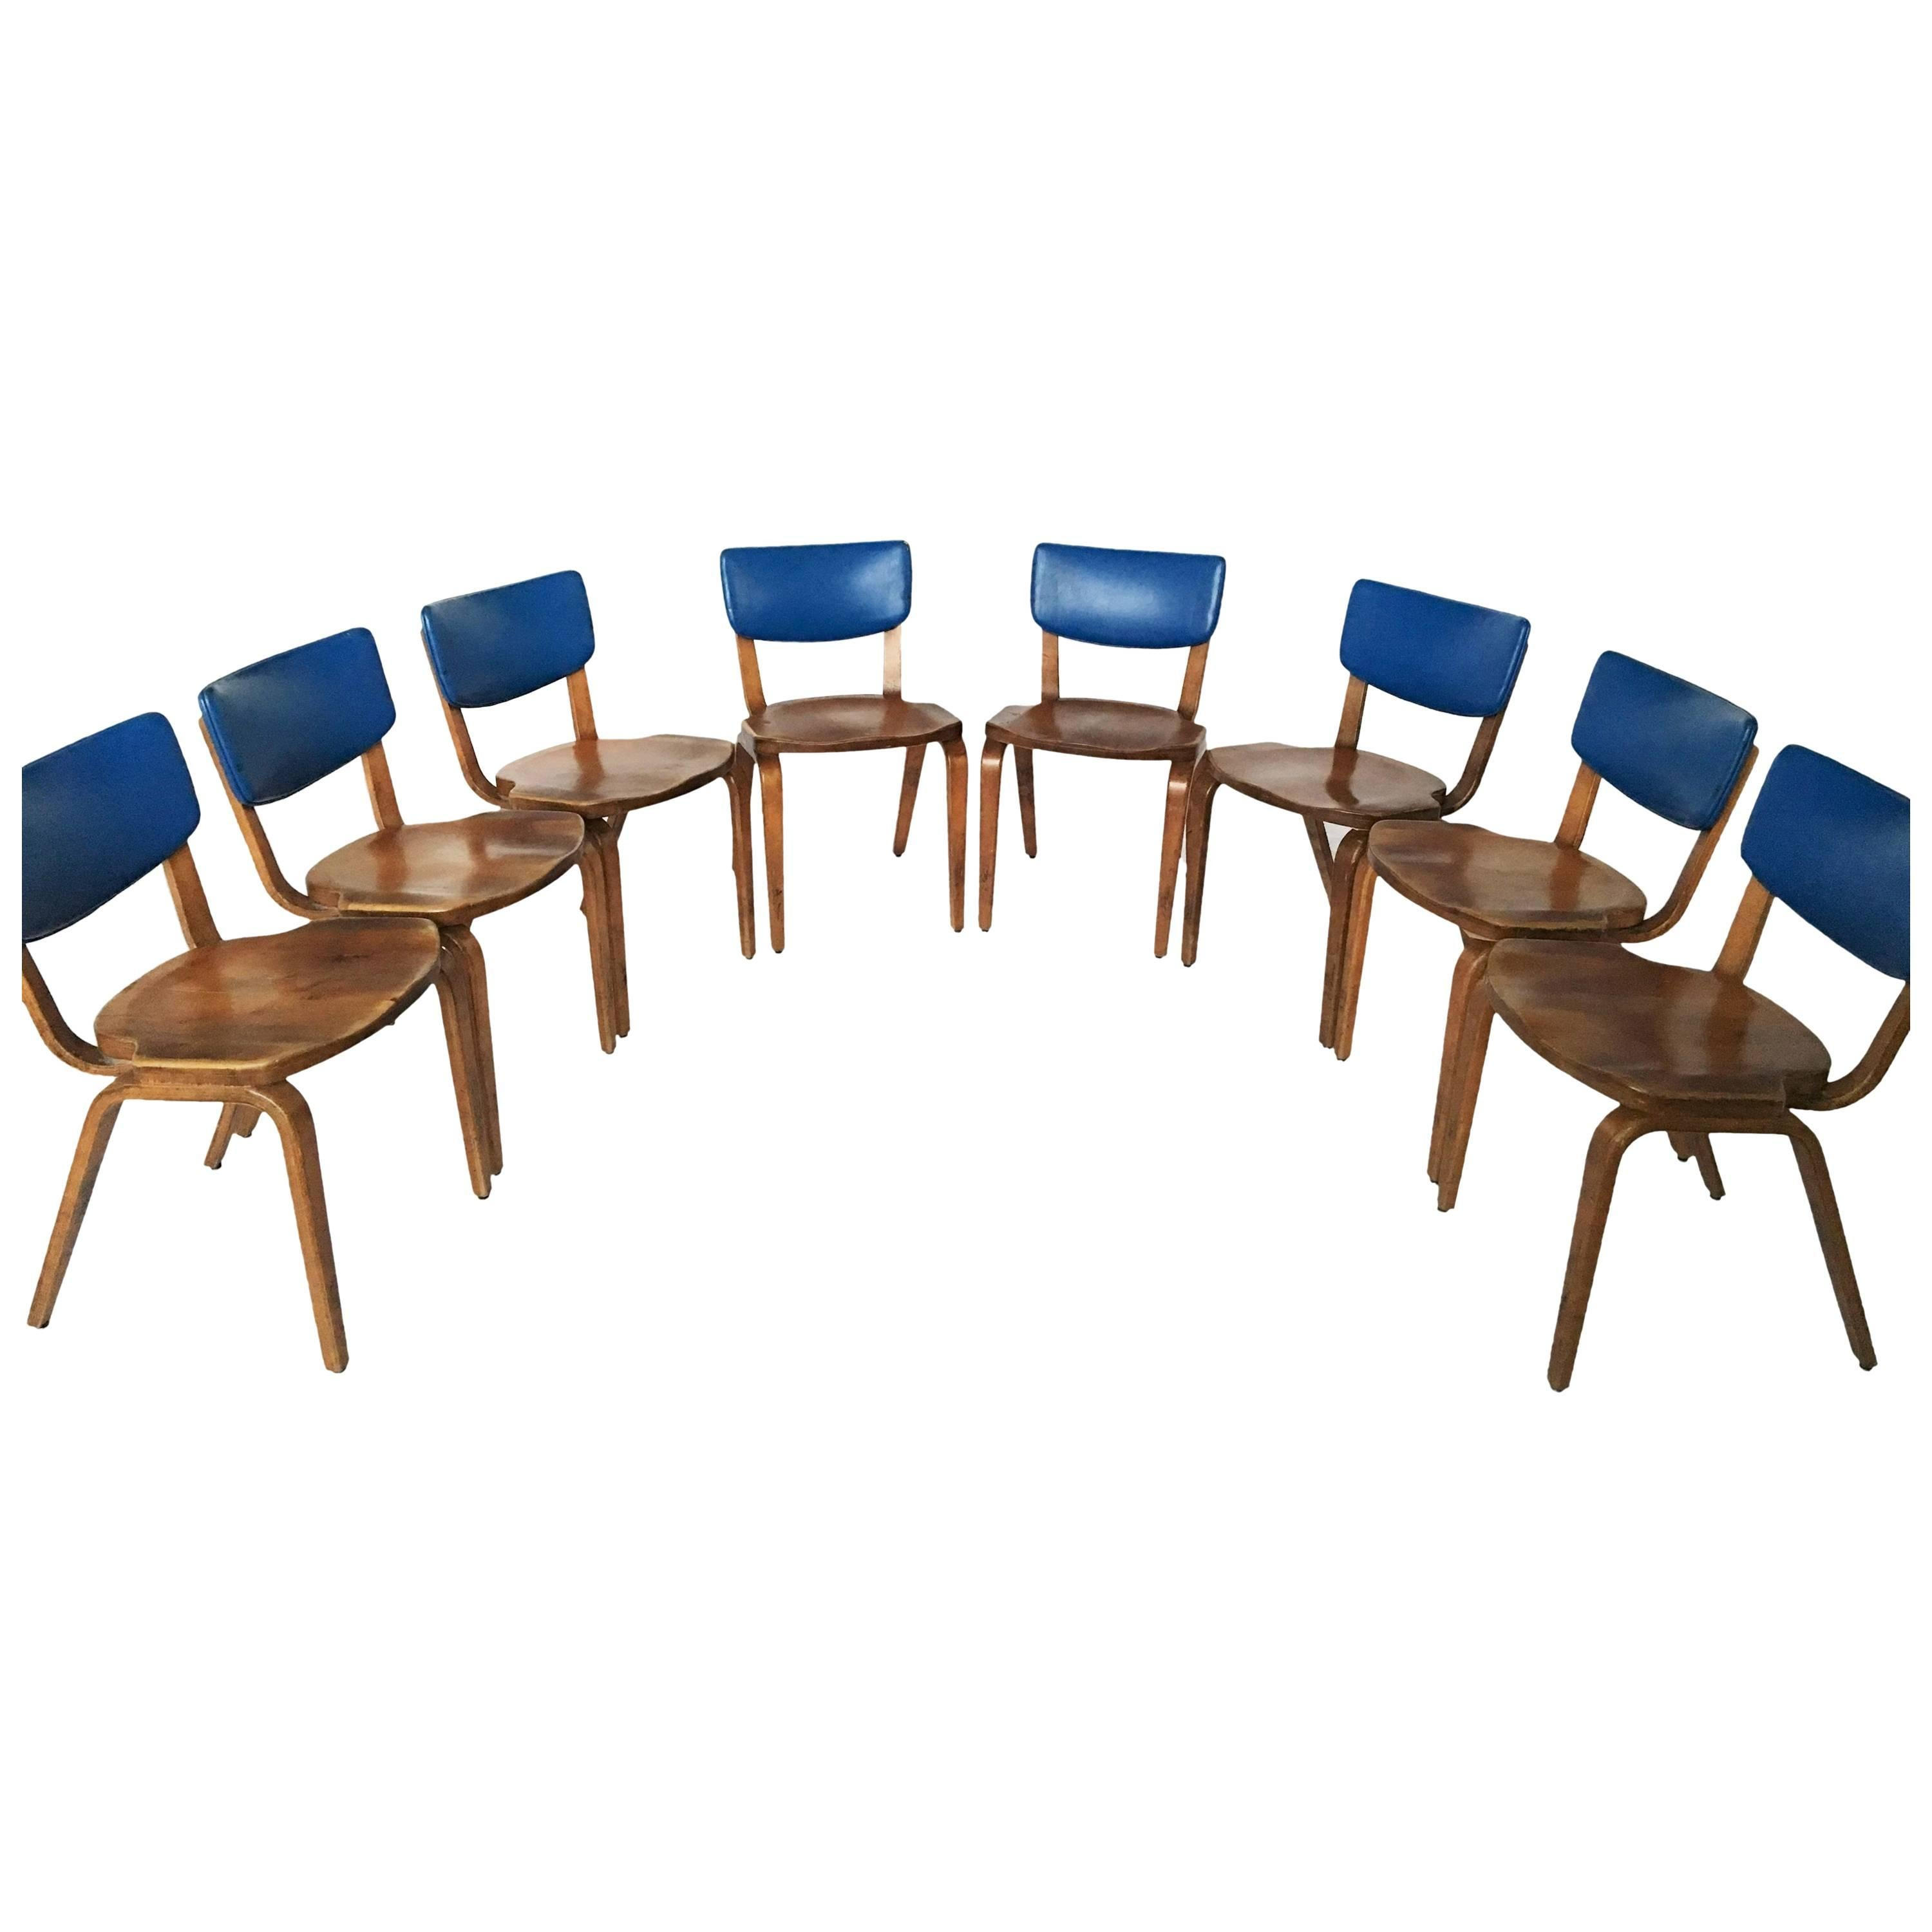 Original 1940 Thonet Bentwood Dining Chairs, Set Of Eight For Sale